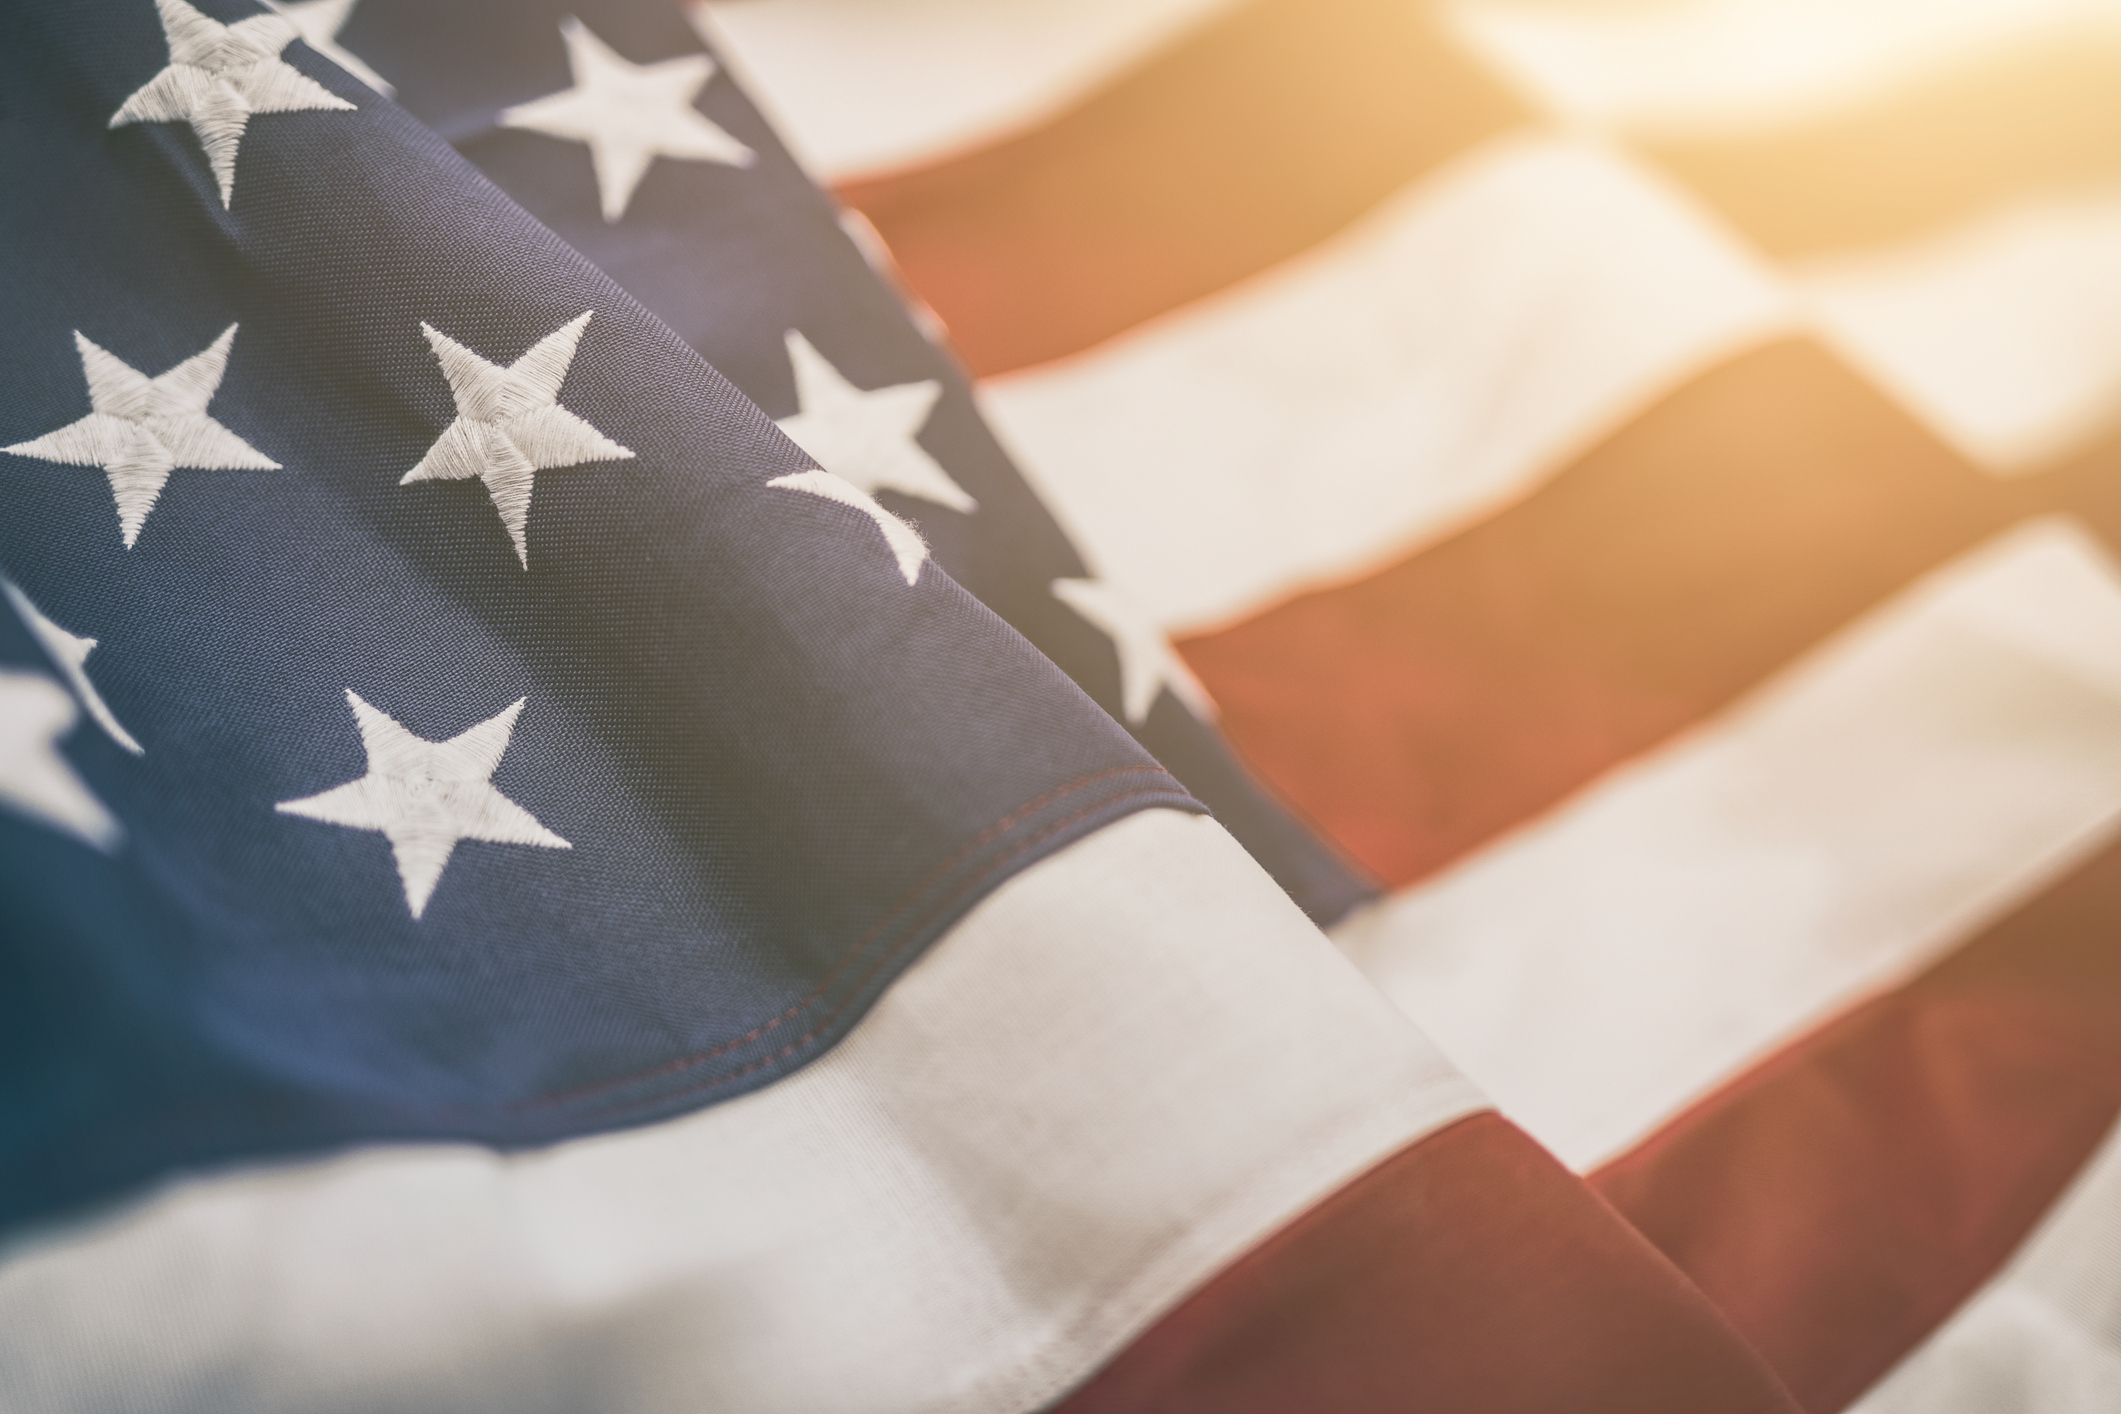 Freedom Grants - In 2019-20, the Elks National Veterans Service Commission awarded $2,000 Freedom Grants to projects that serve veterans and active-duty military members.